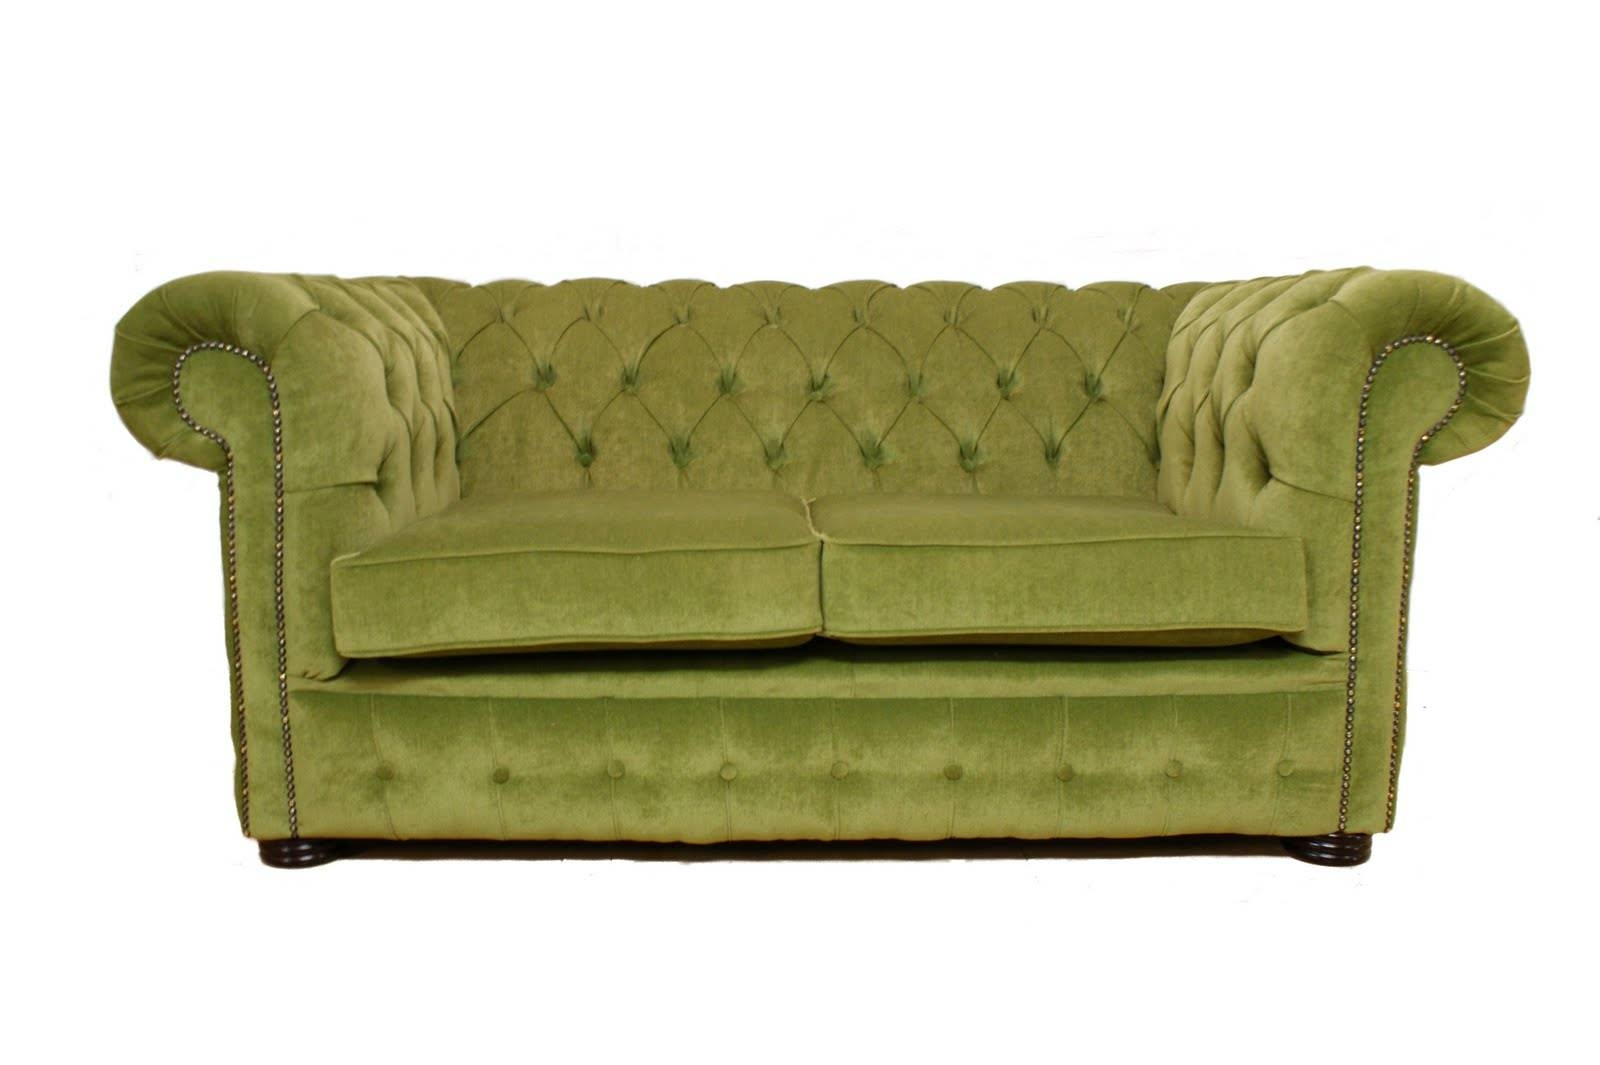 Middle Class Modern: Super Affordable: Chesterfield Sofas throughout Craigslist Chesterfield Sofas (Image 10 of 15)